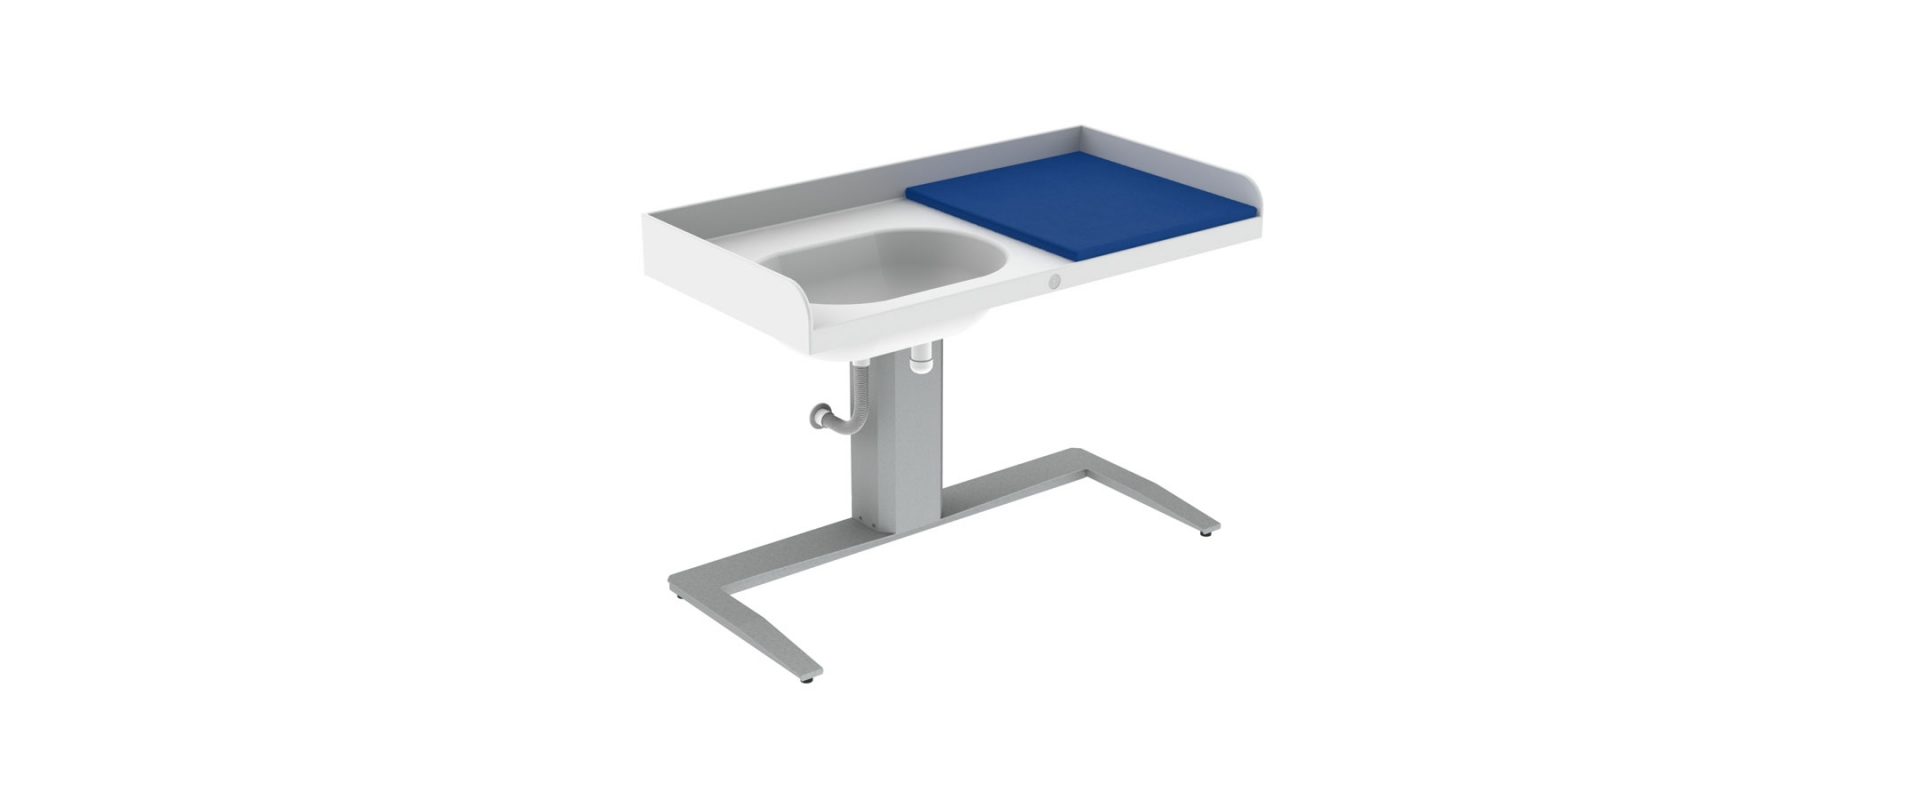 <b>Baby changing table 343 - left</b>